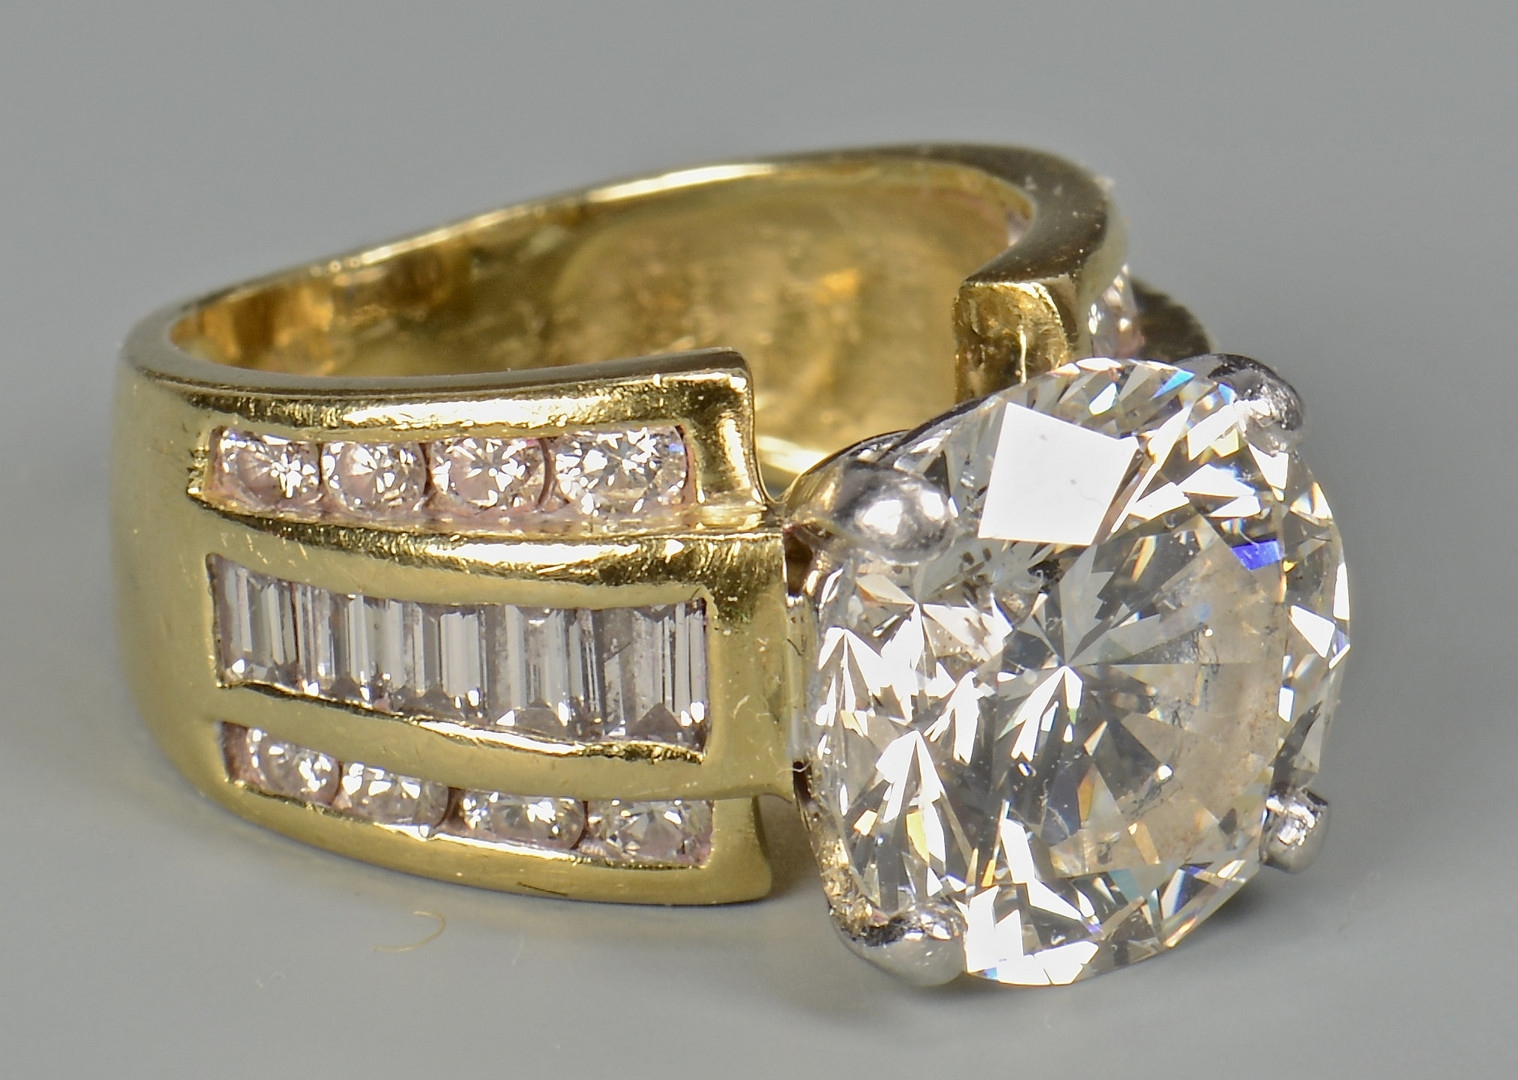 Lot 45: 5.06 ct Round Diamond Ring, GIA